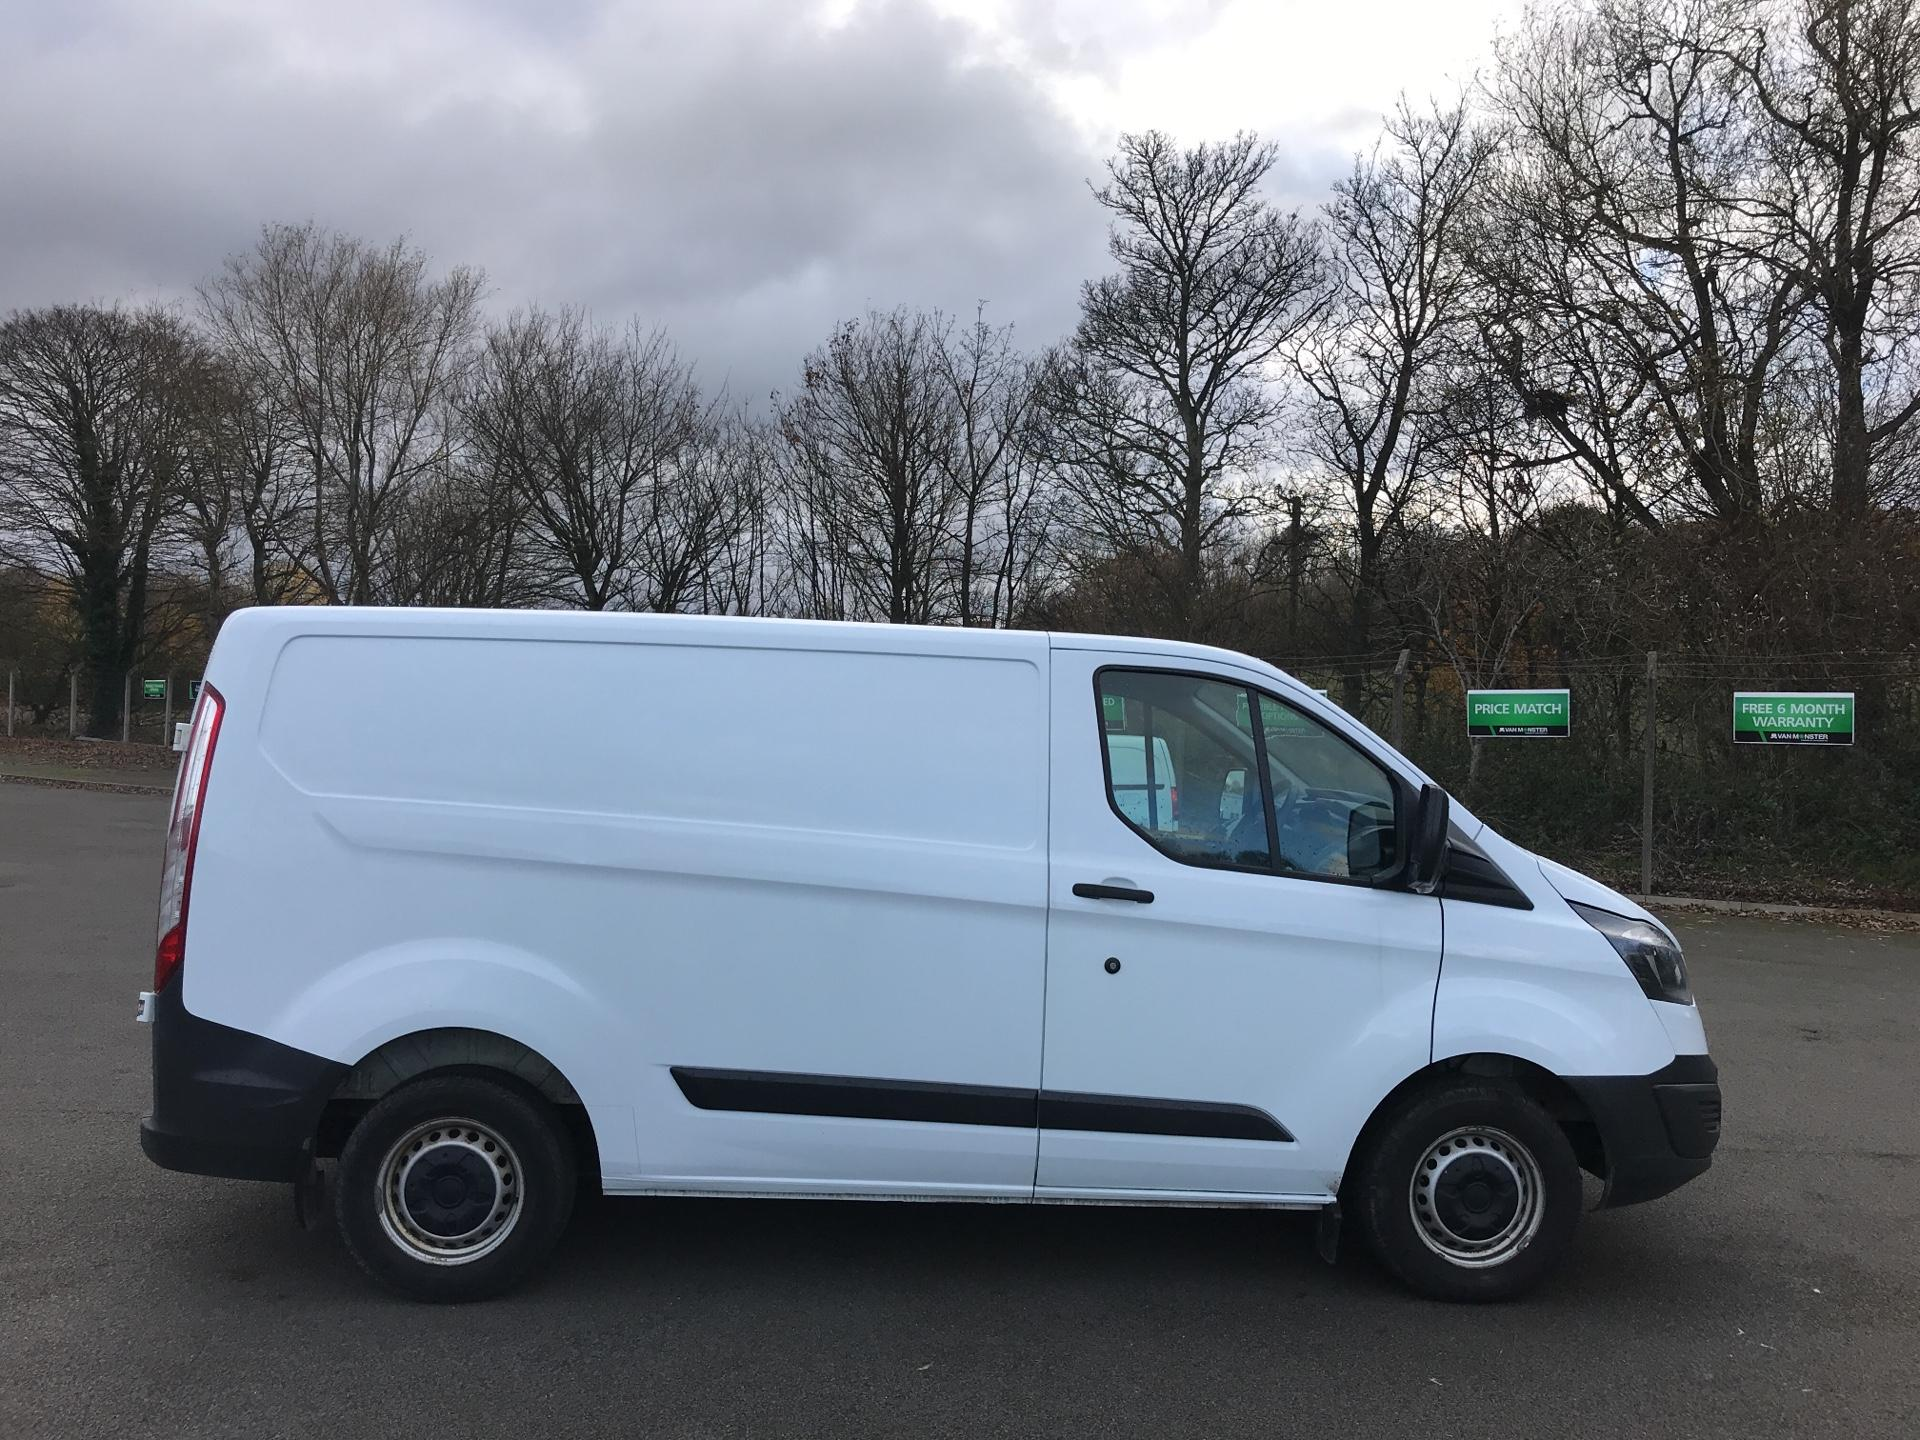 2015 Ford Transit Custom 290 L1 DIESEL FWD 2.2  TDCI 100PS LOW ROOF VAN EURO 5 *VALUE RANGE VEHICLE - CONDITION REFLECTED IN PRICE* (NK15XRE) Image 2